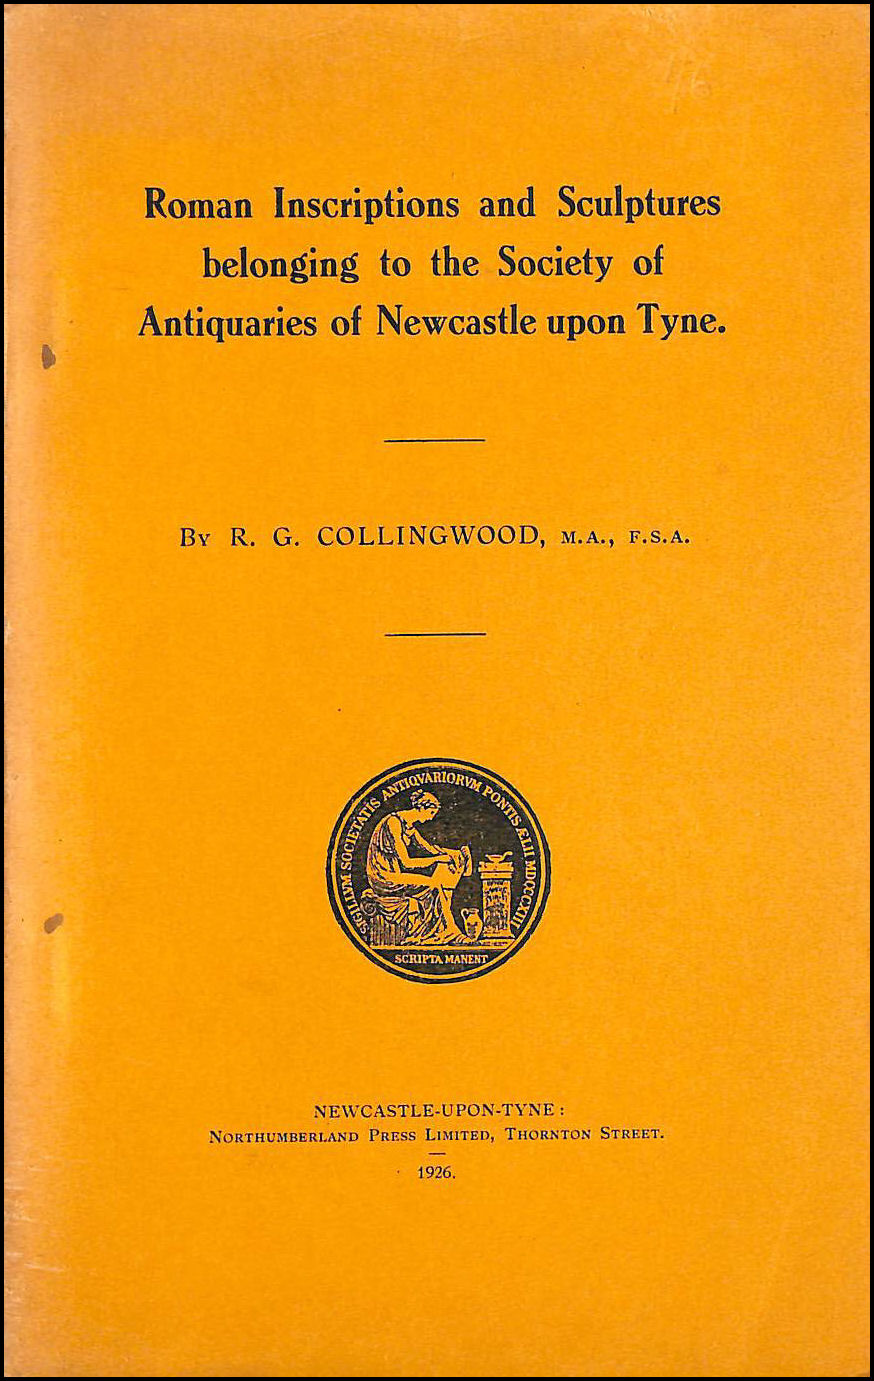 Roman Inscriptions and Sculptures belonging the Society of Antiquaries of Newcastle upon Tyne :(Read on 27th January 1926), Collingwood, R. G.